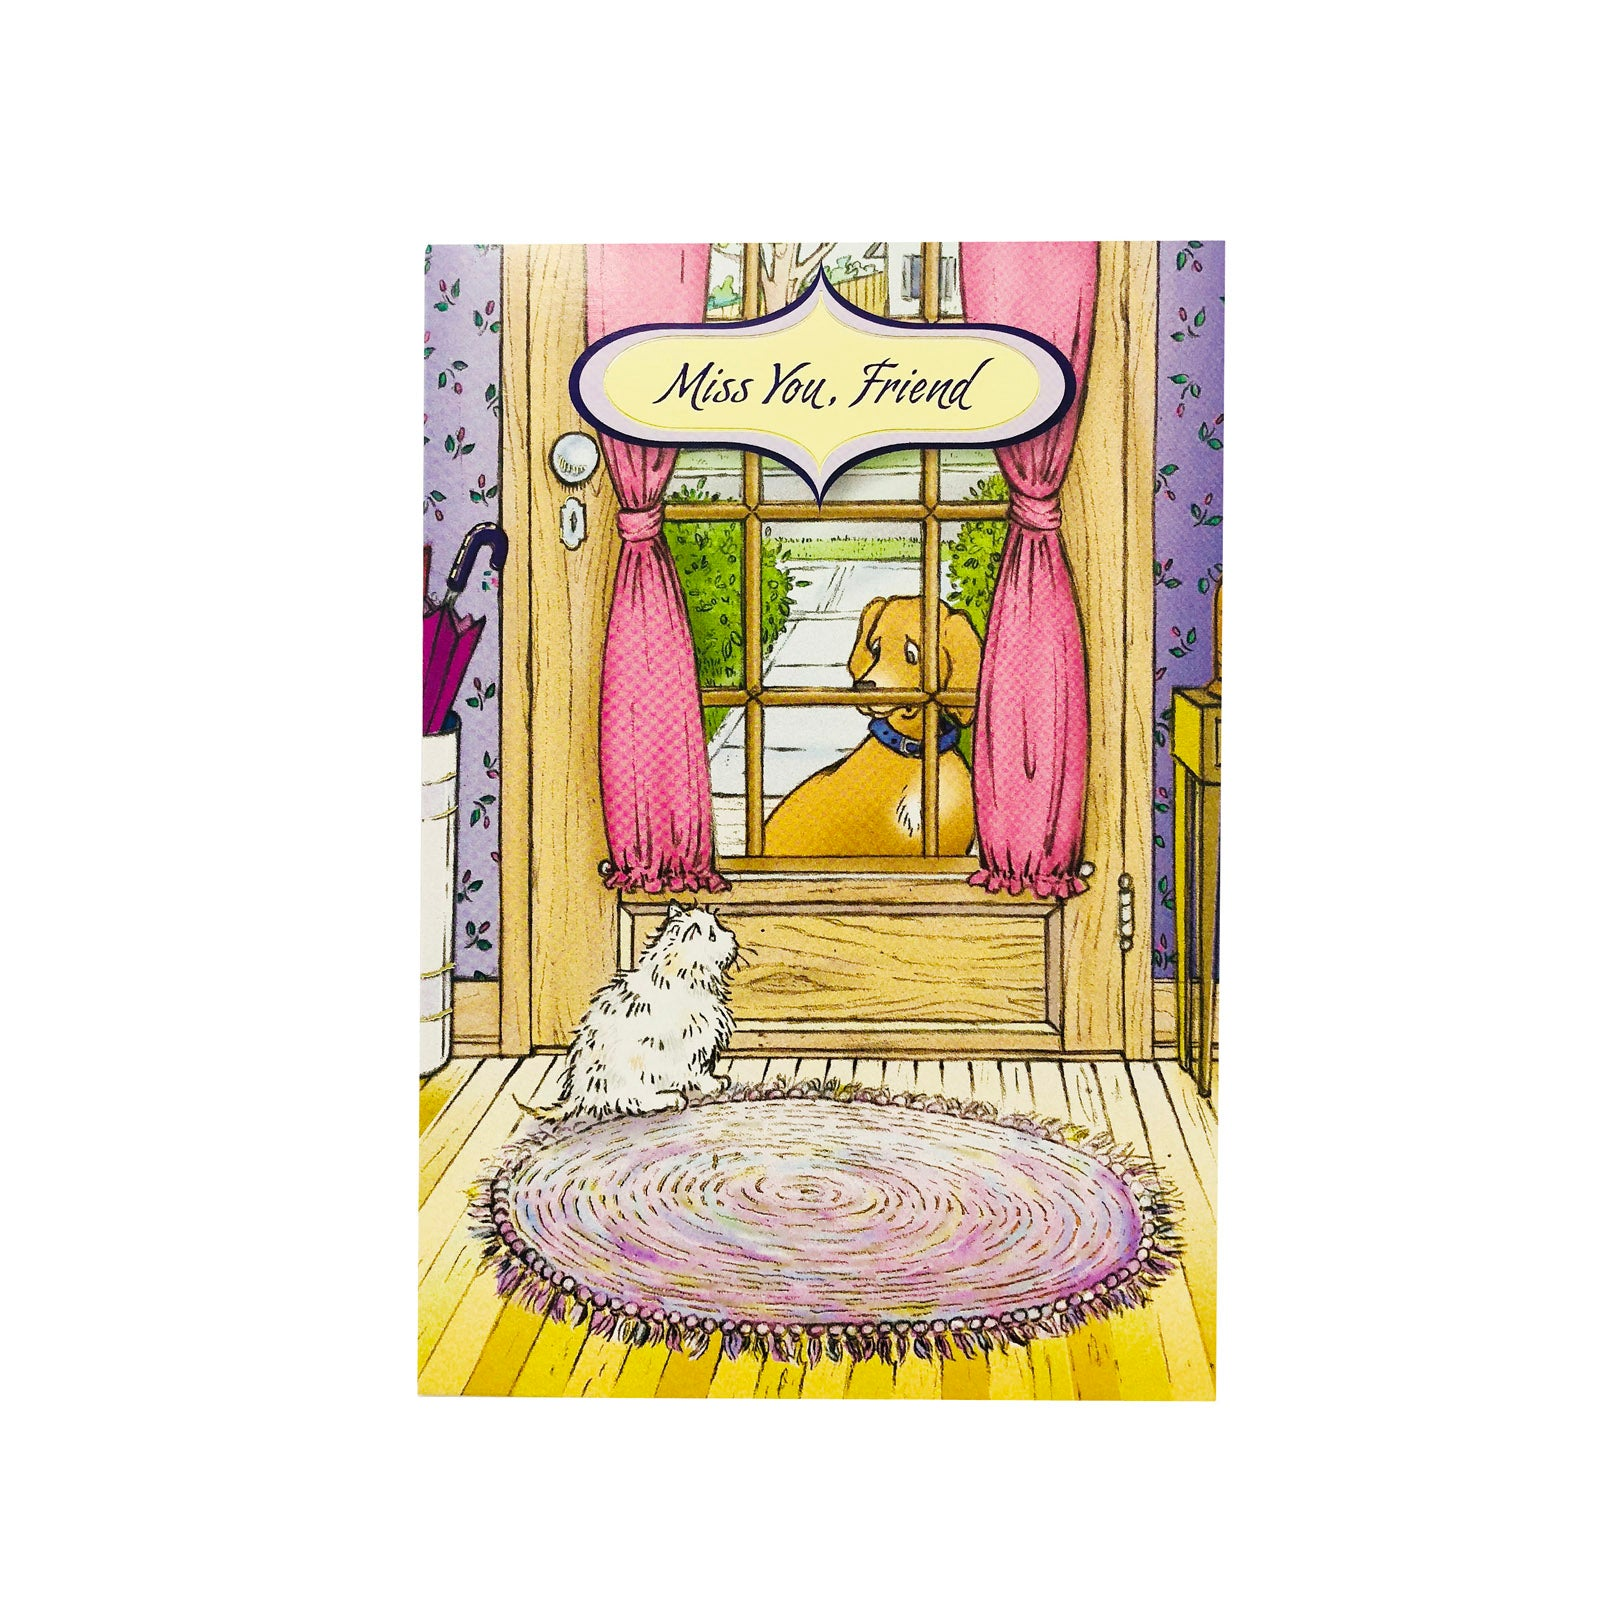 Designer Greetings Love Card - Miss You Friend - Dog And Cat